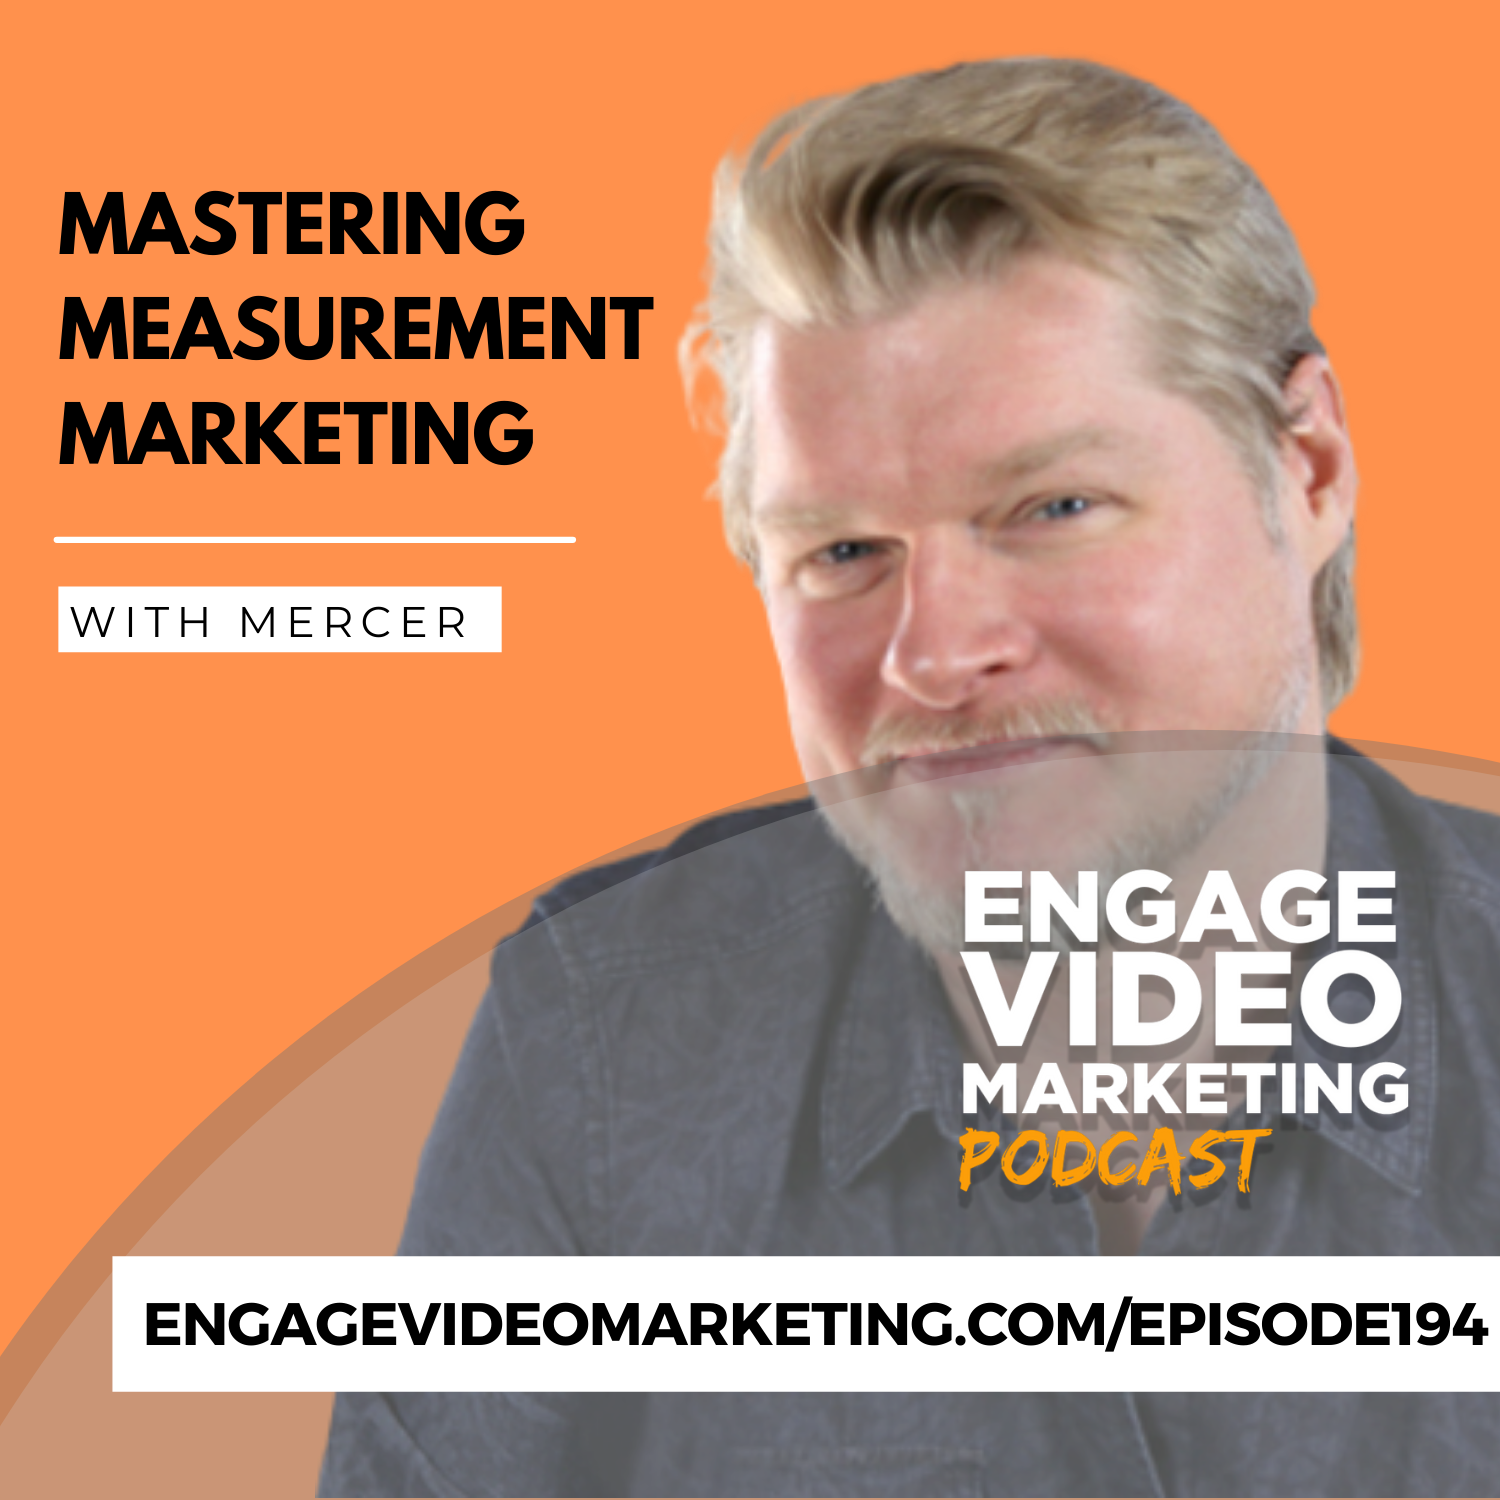 Mastering Measurement Marketing with Mercer